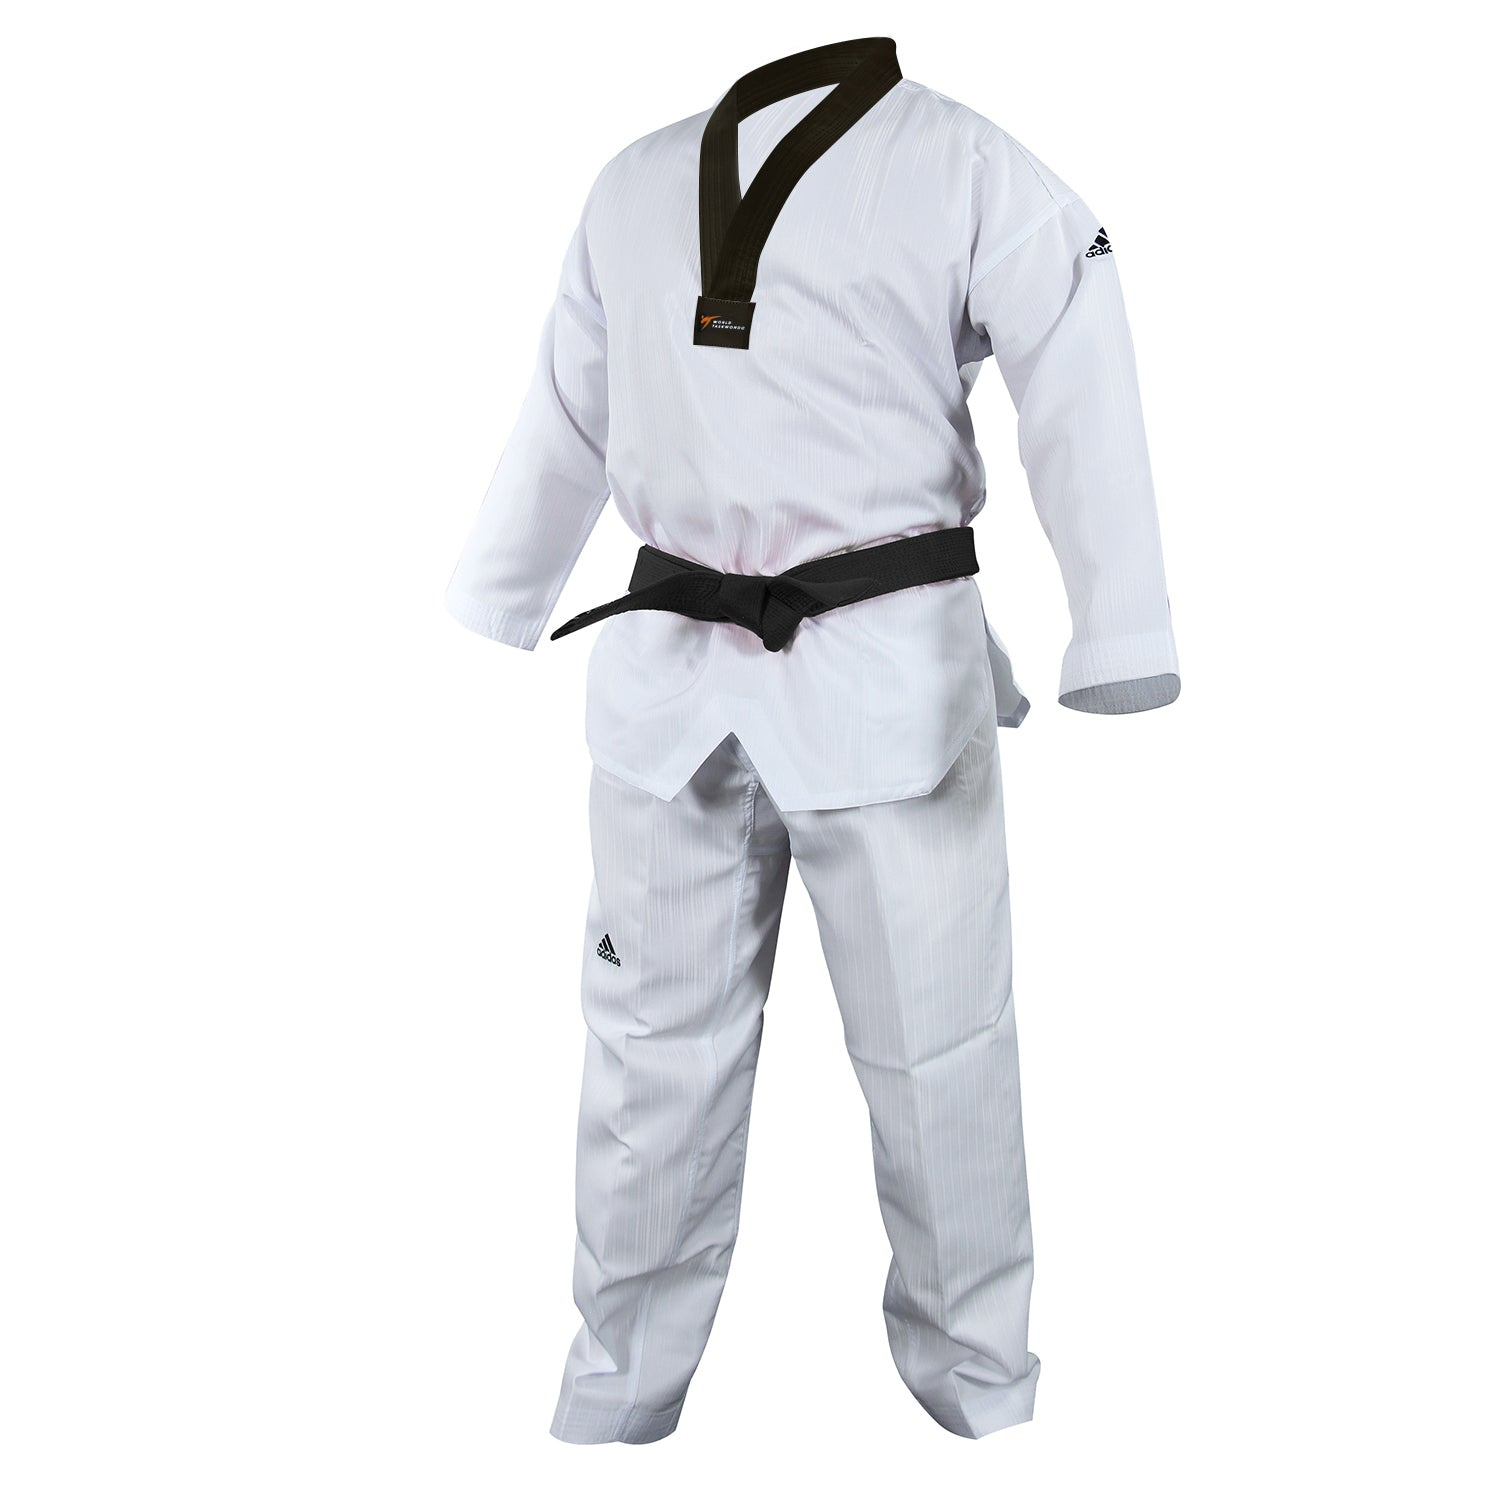 adidas ADI-START II Taekwondo Uniform